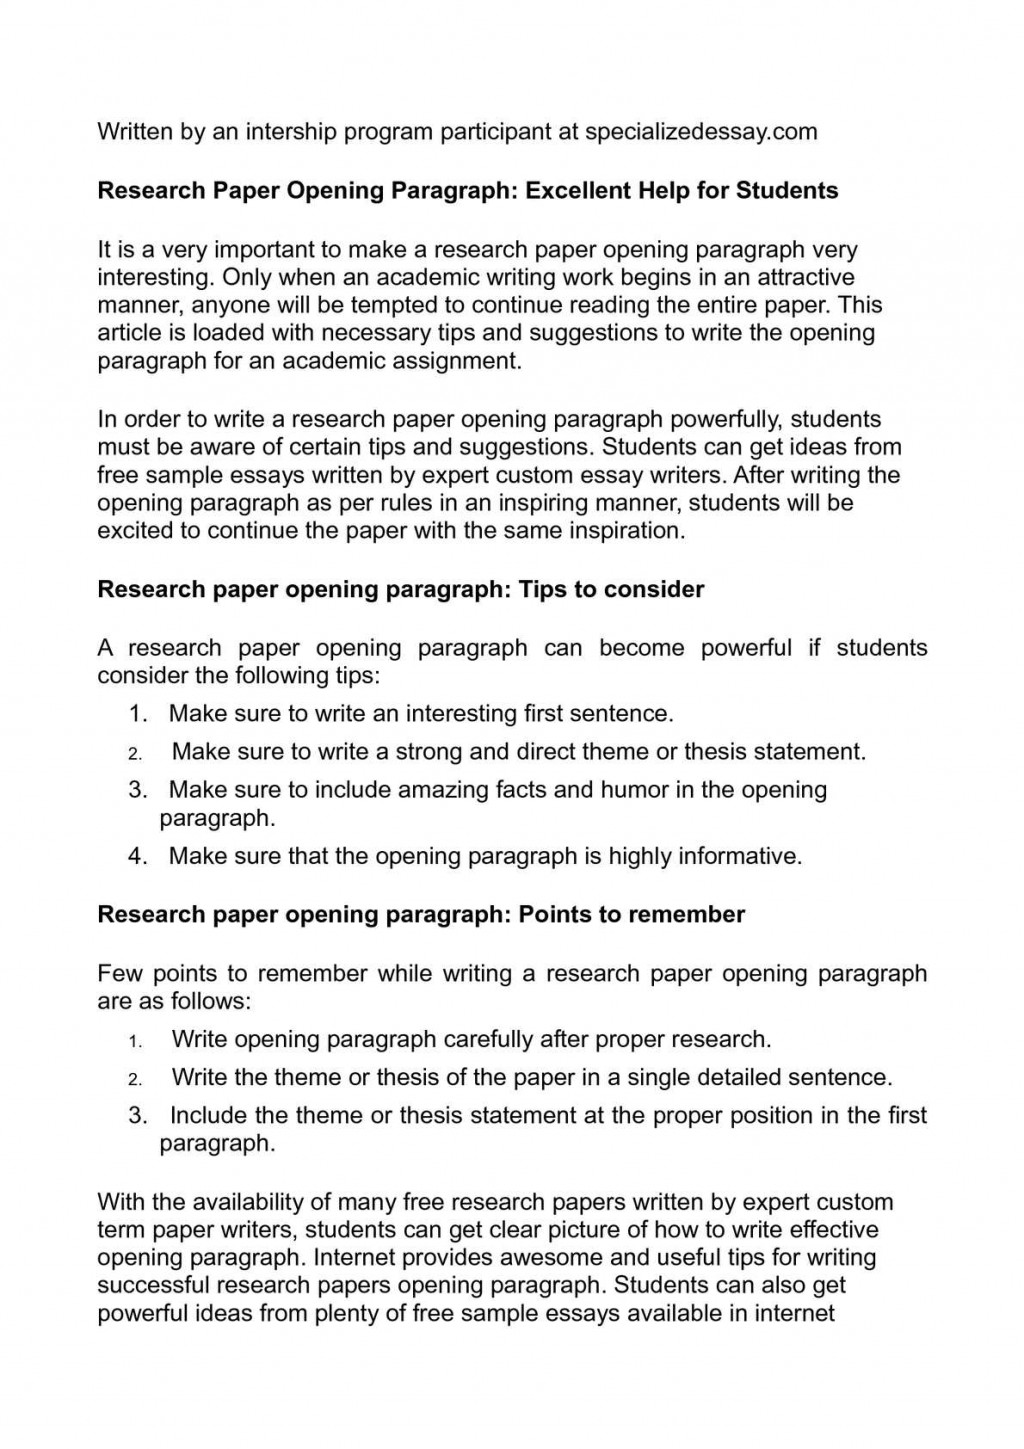 005 Research Paper P1 Tips For Wondrous Papers Good Effective Writing Large